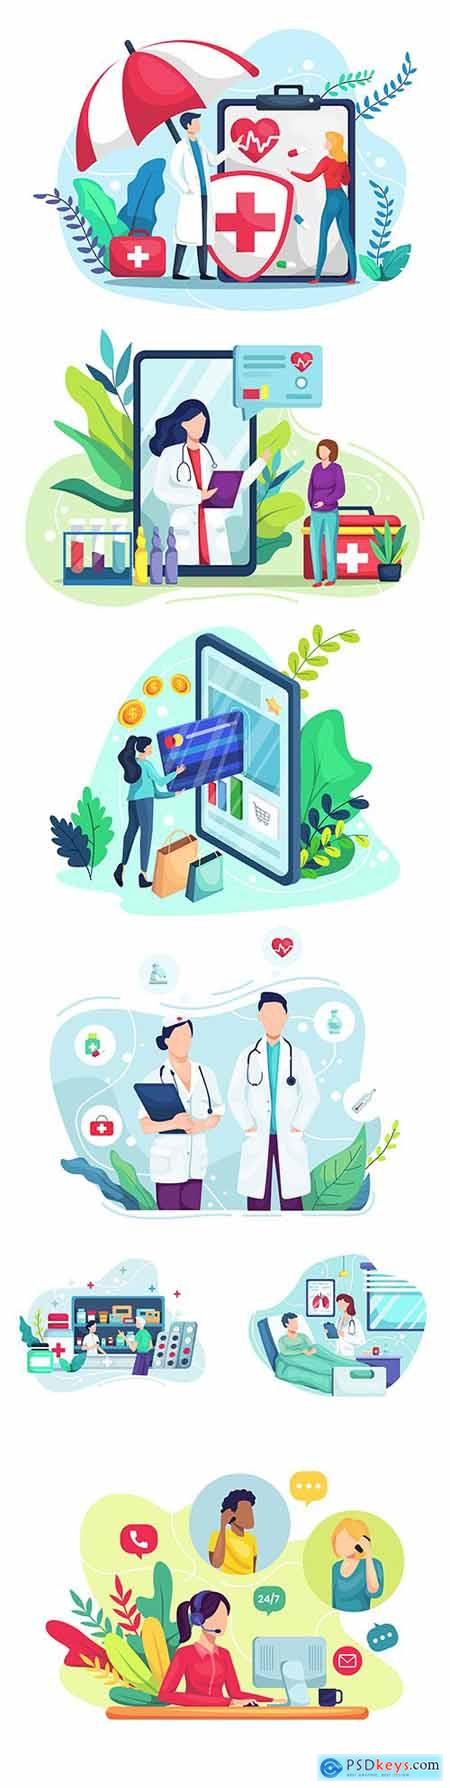 Health insurance and shopping online illustration concept